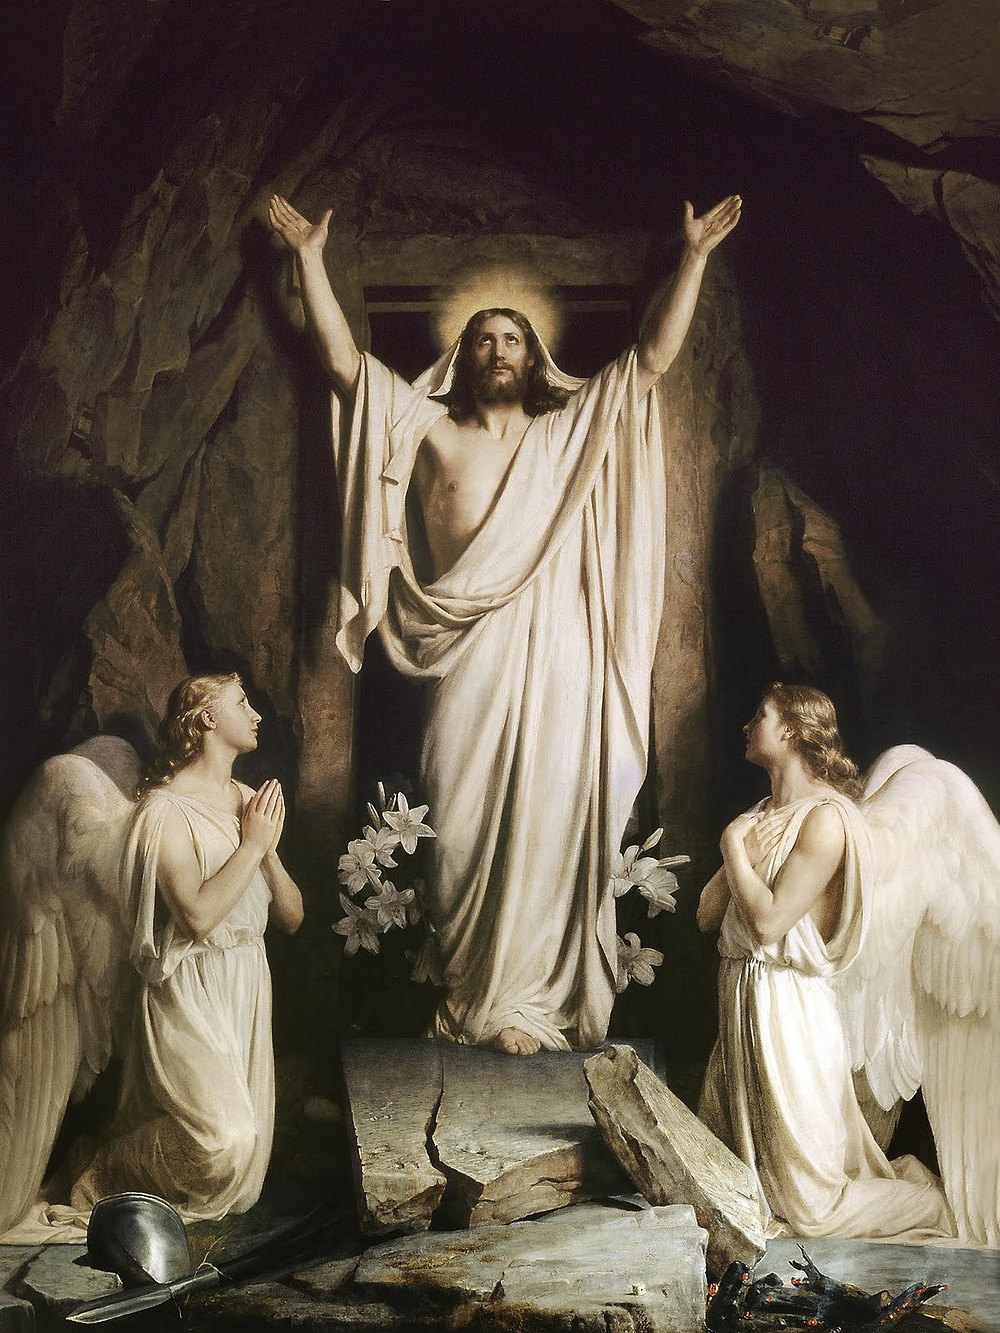 Resurrection of Jesus Christ Painting by Carl Bloch